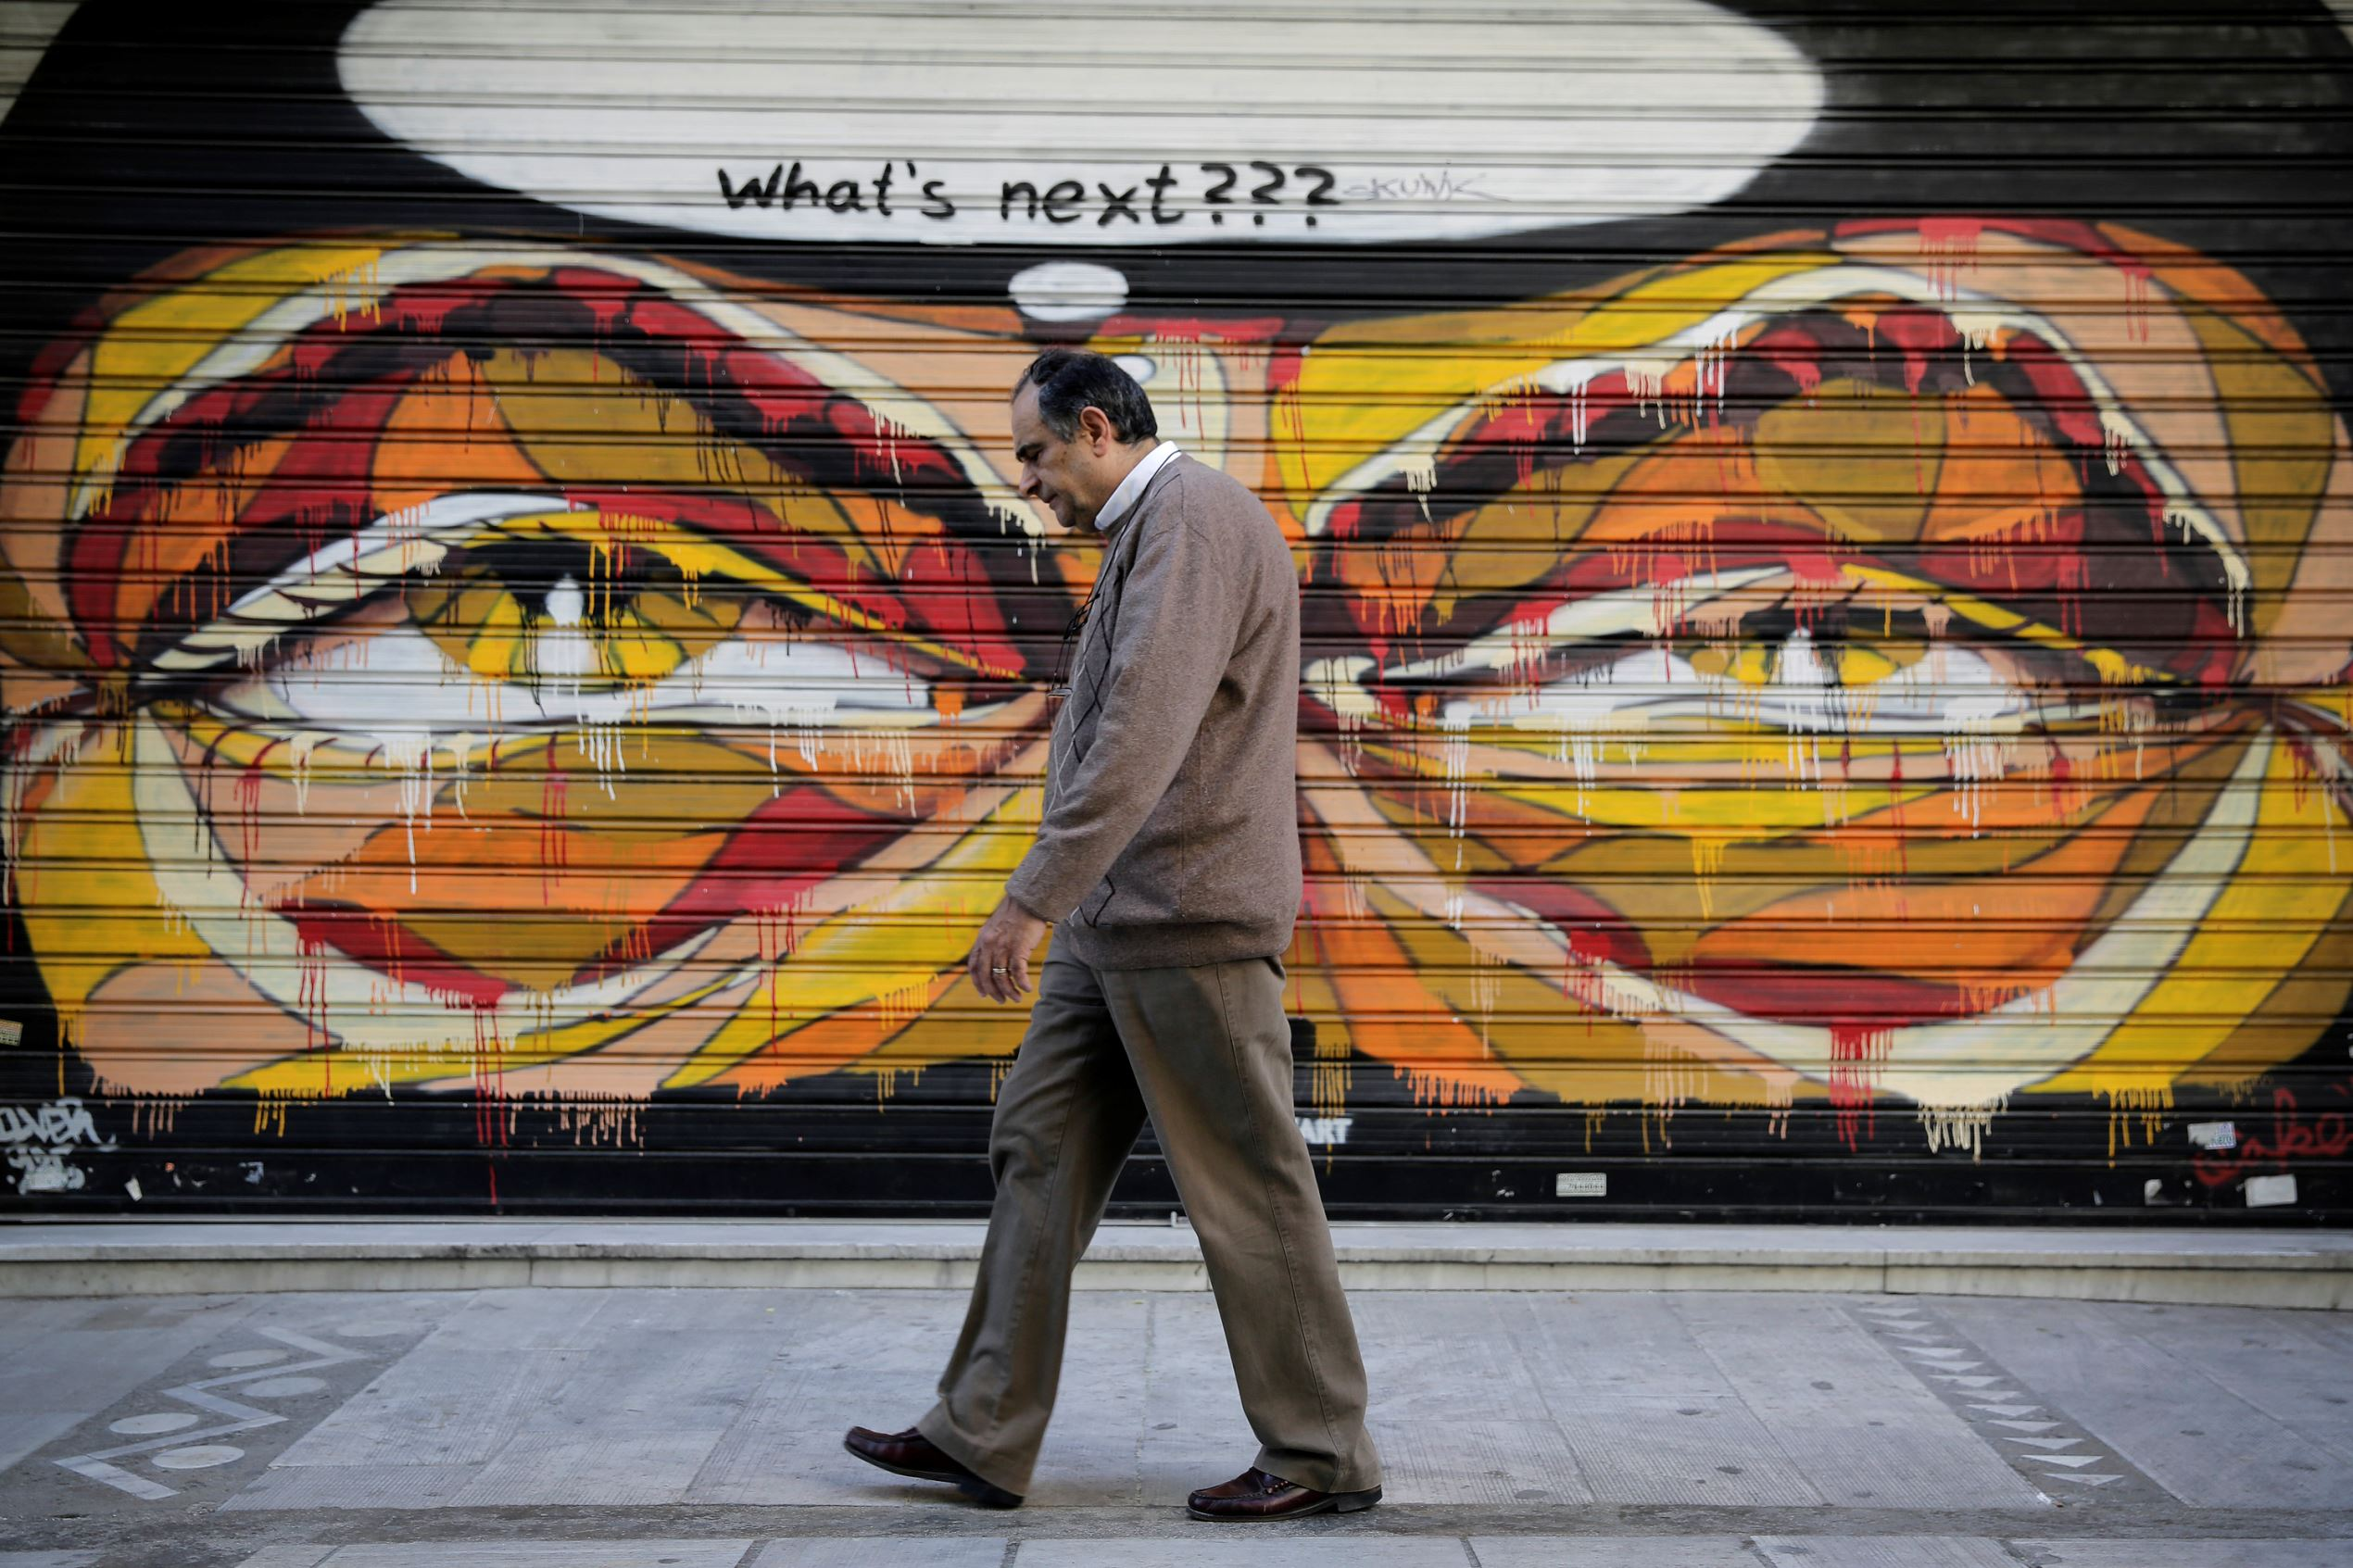 In this photo made on Tuesday, April 29, 2015, a Greek man walks past a graffiti in central Athens. Wednesday May 6 marks five years since Greece voted in its first bailout deal in the face of violent popular protests that left three dead. The day was followed by years of turmoil in which the country tried to overhaul its economy in the midst of a downturn matched in depth and length only by the Great Depression.